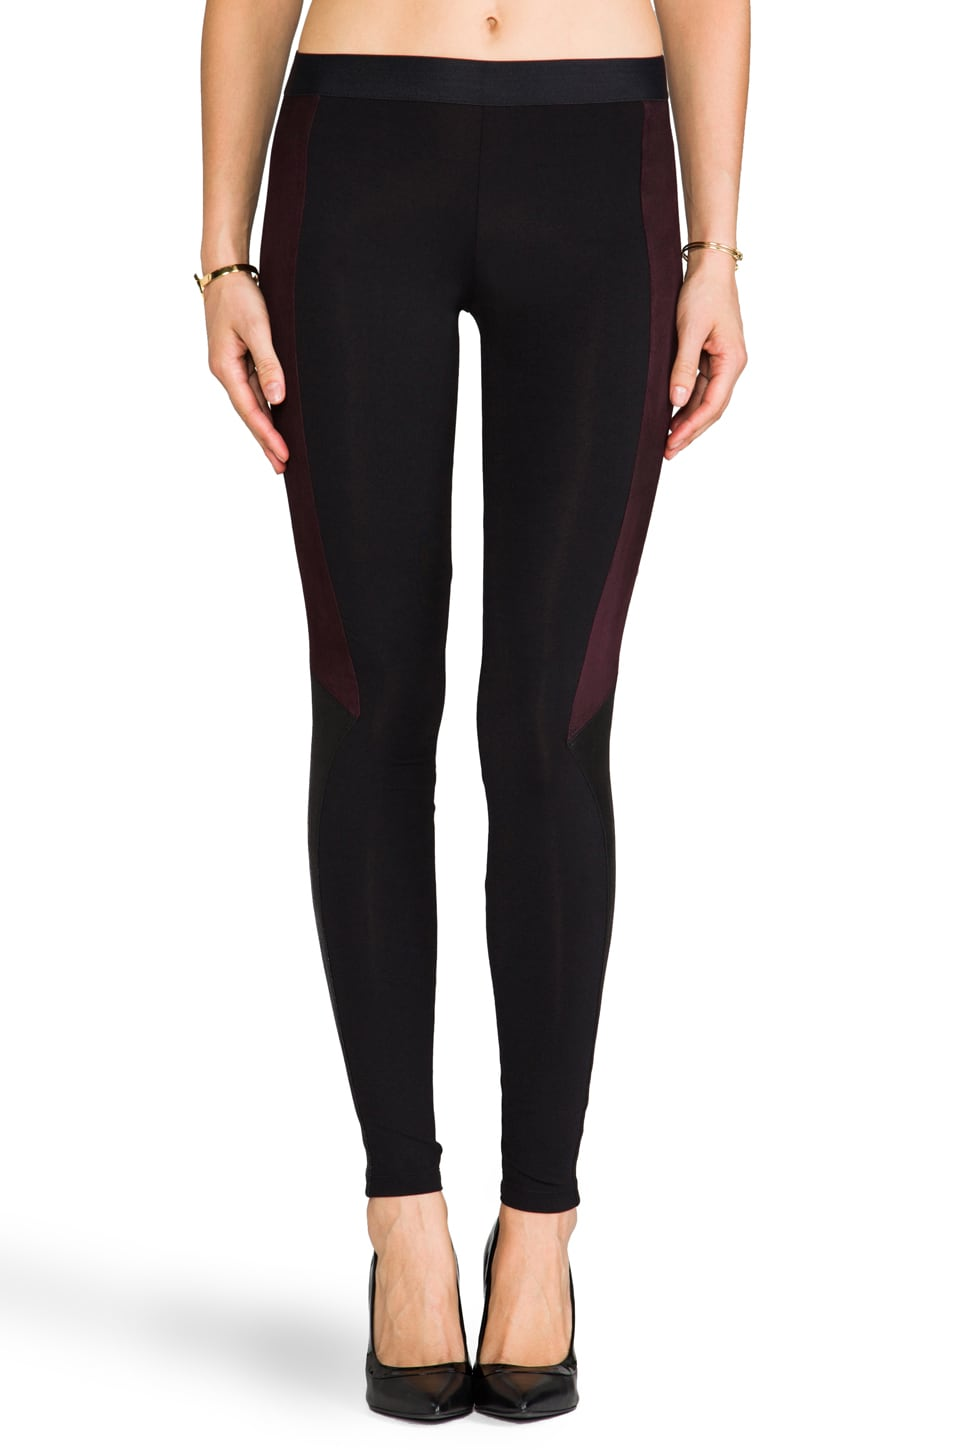 David Lerner The Tudor Legging in Black/Cocoa/Black